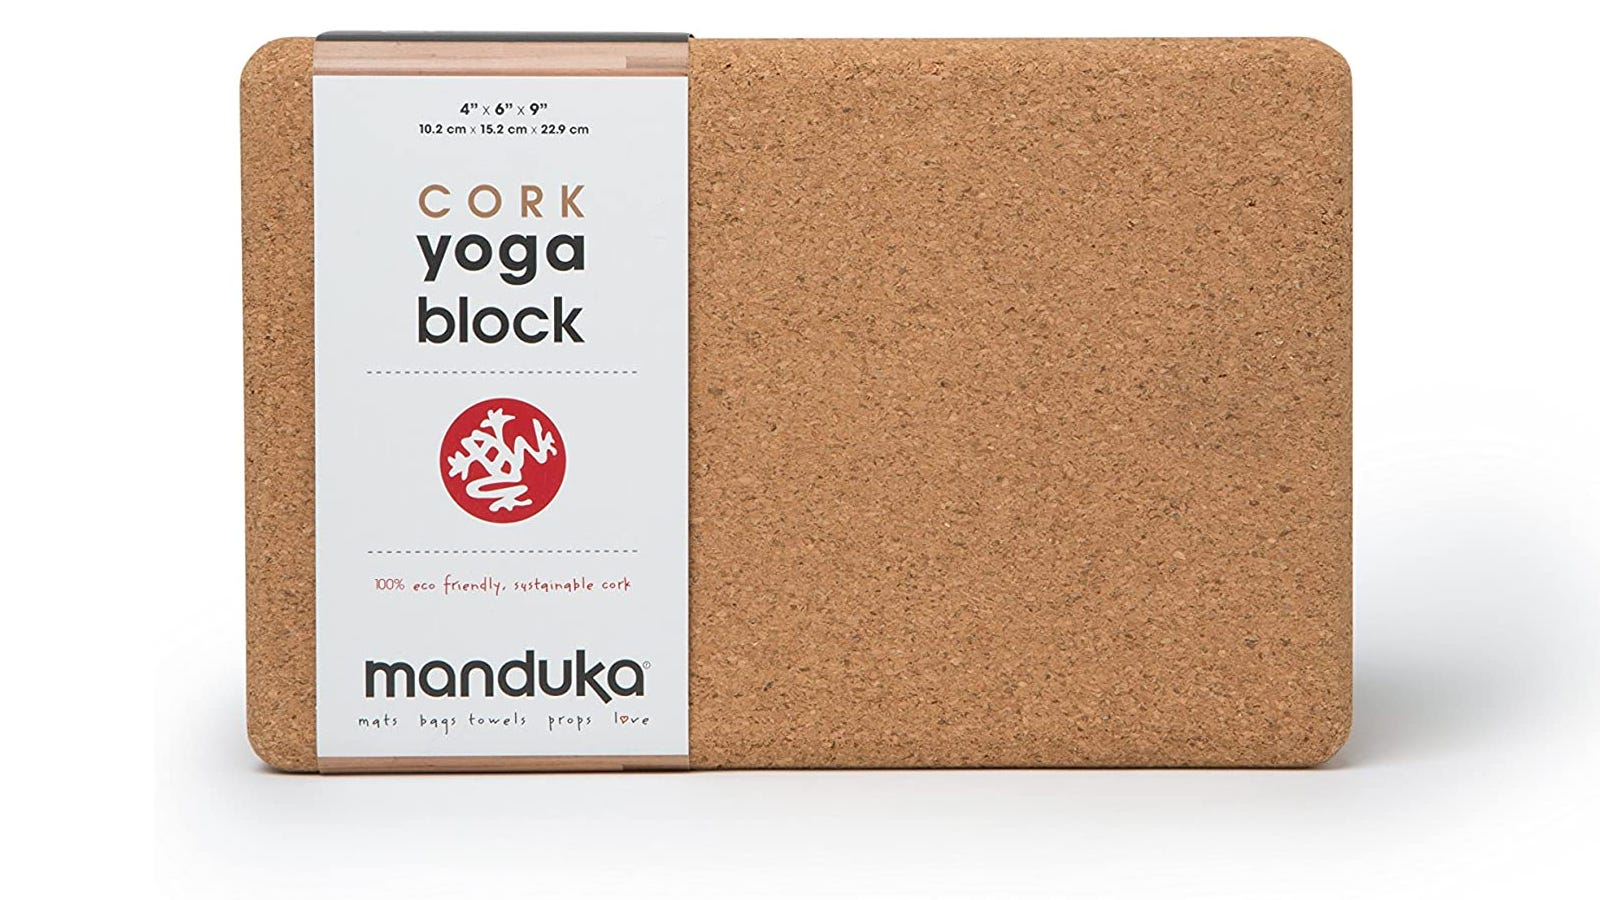 A yoga block made from cork with a label that states the brand Manduka.